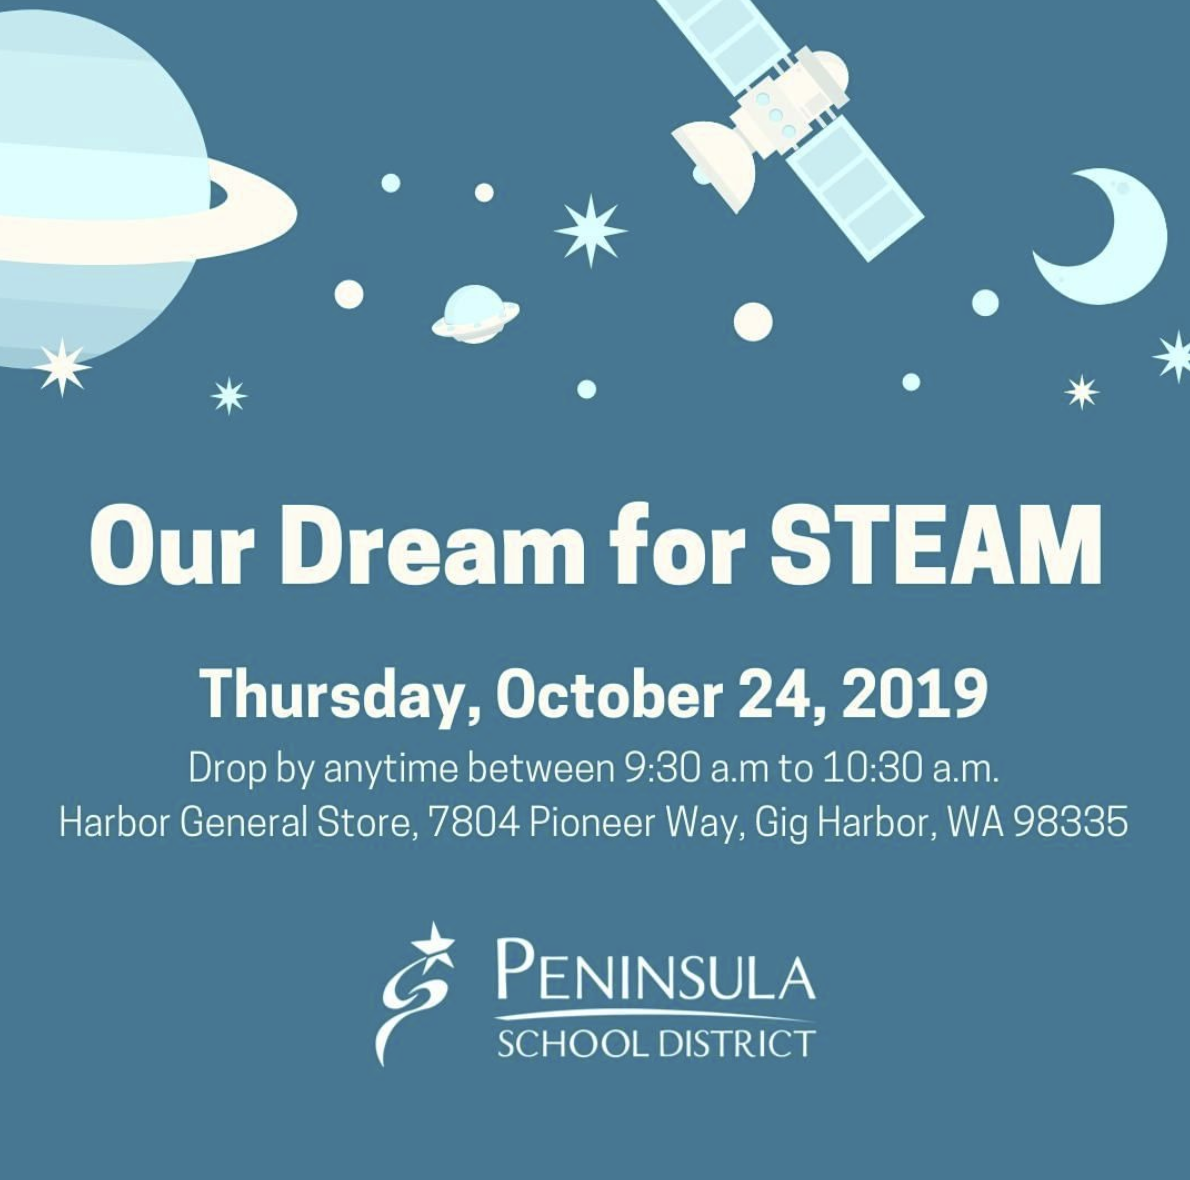 Pioneer Principal, Stephanie Strader, wants to hear your ideas for the new magnet school that will have a special focus on STEAM when it opens in the fall of 2020. Thursday, October 24, 2019 Drop by any time between 9:30 a.m. to 10:30 a.m. Harbor General Store, 7804 Pioneer Way, Gig Harbor